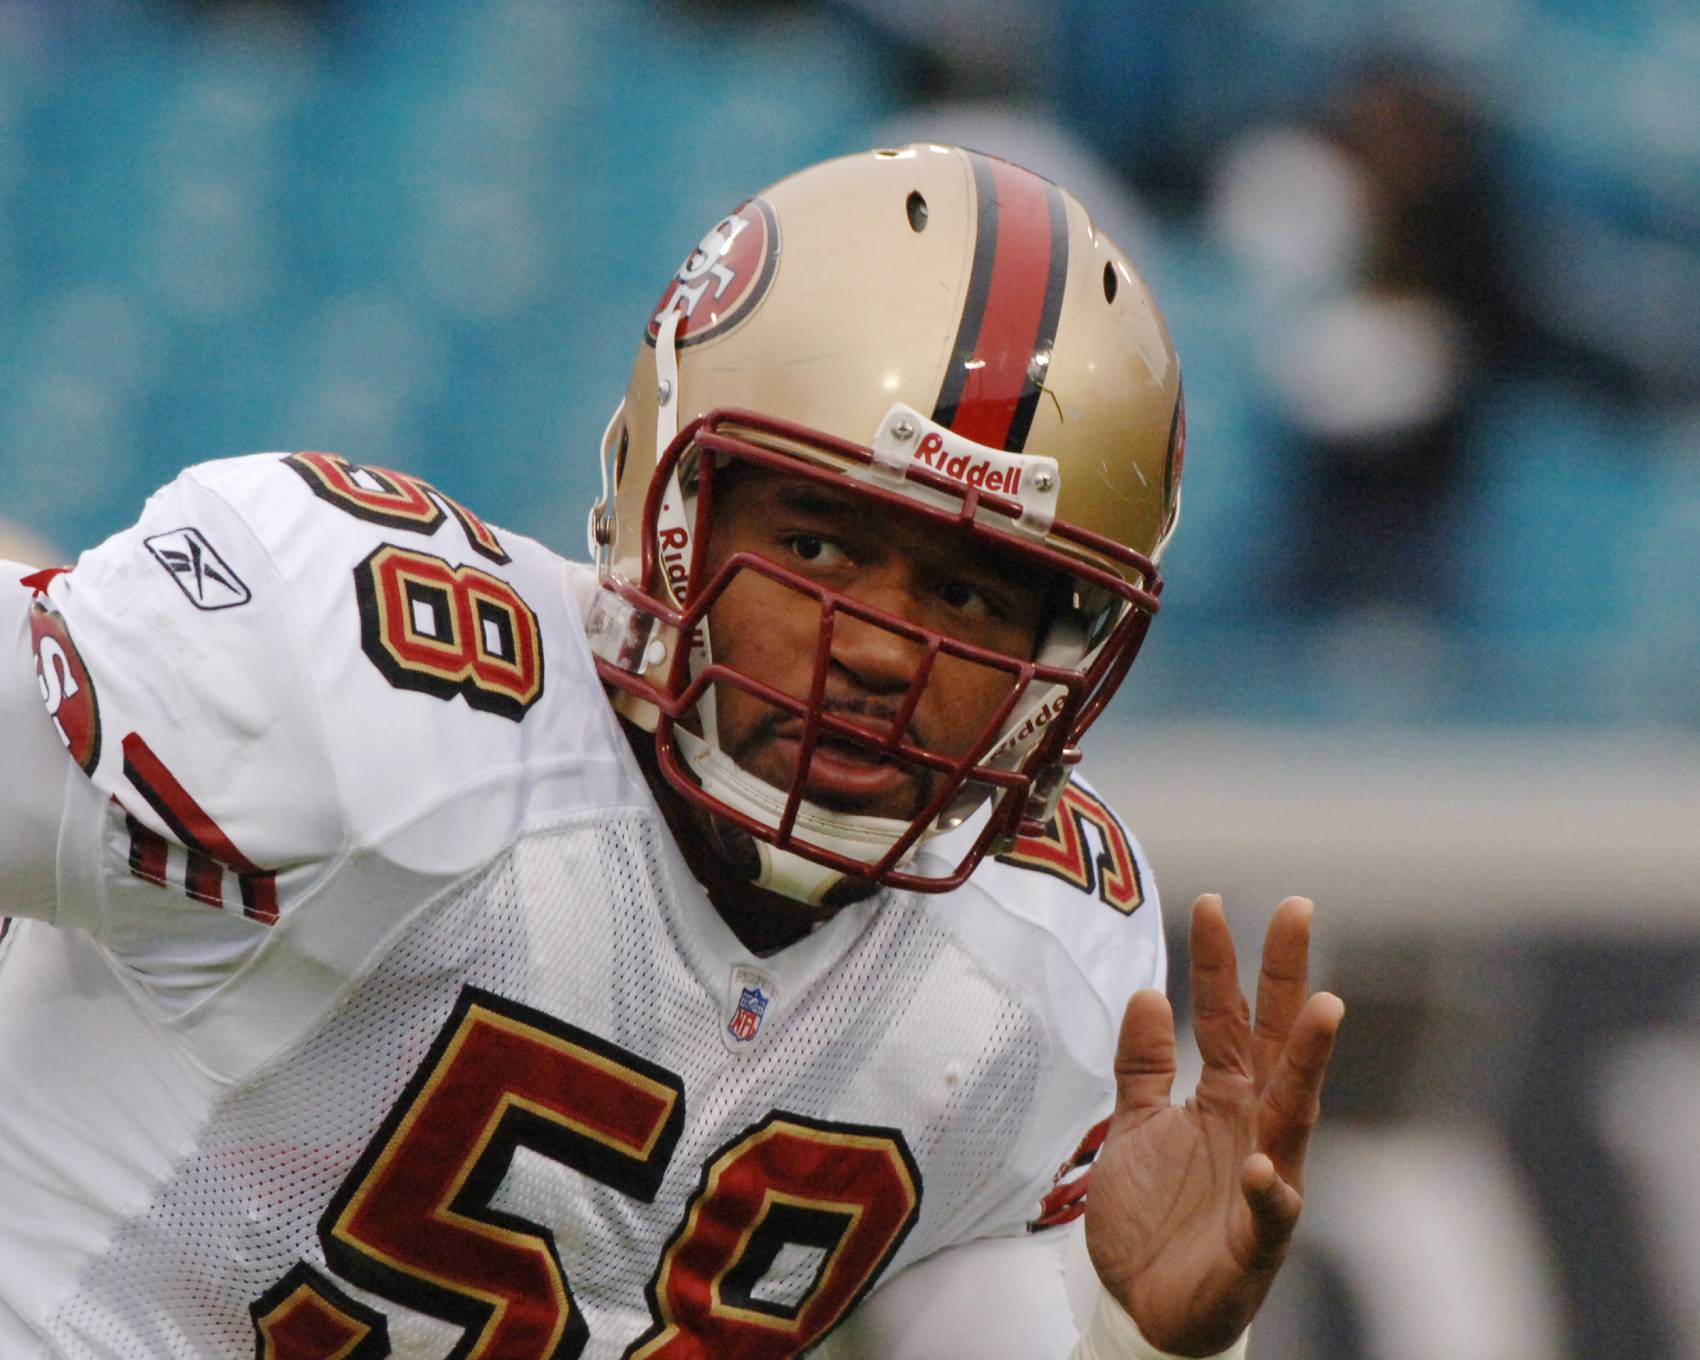 Former San Francisco 49ers defender Corey Smith disappeared in 2009, six years after he won a Super Bowl with the Tampa Bay Buccaneers.